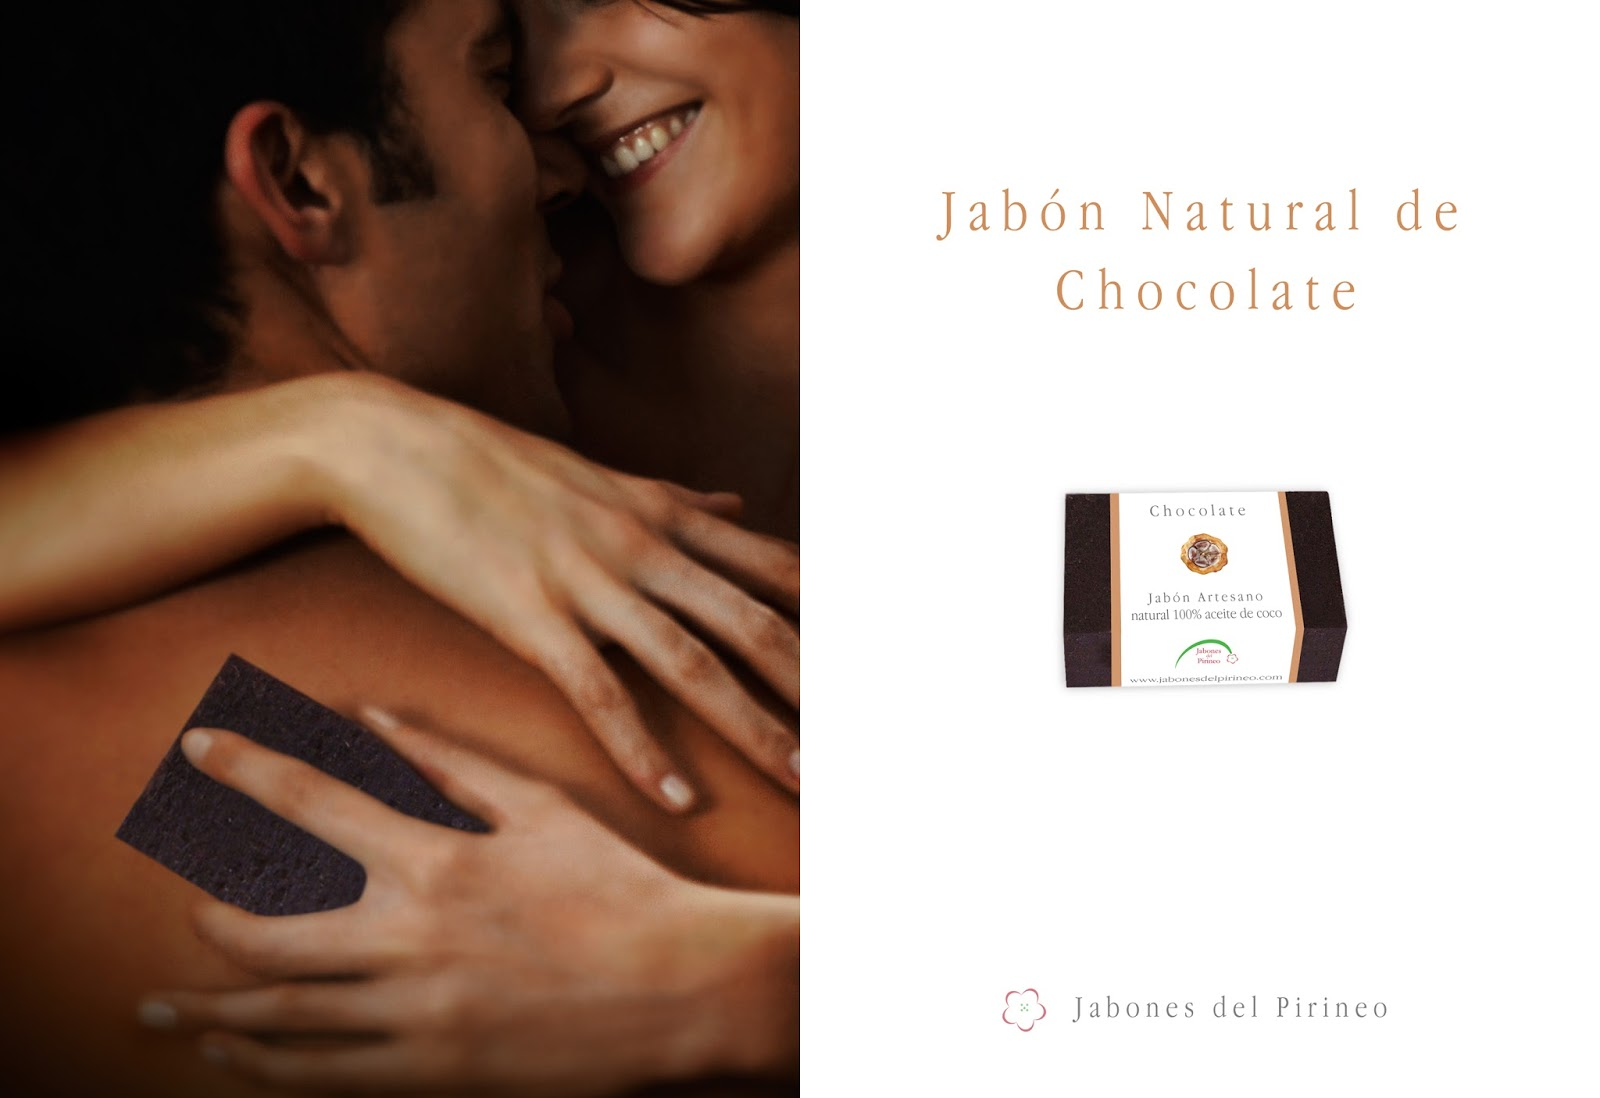 Jabón Natural de Chocolate